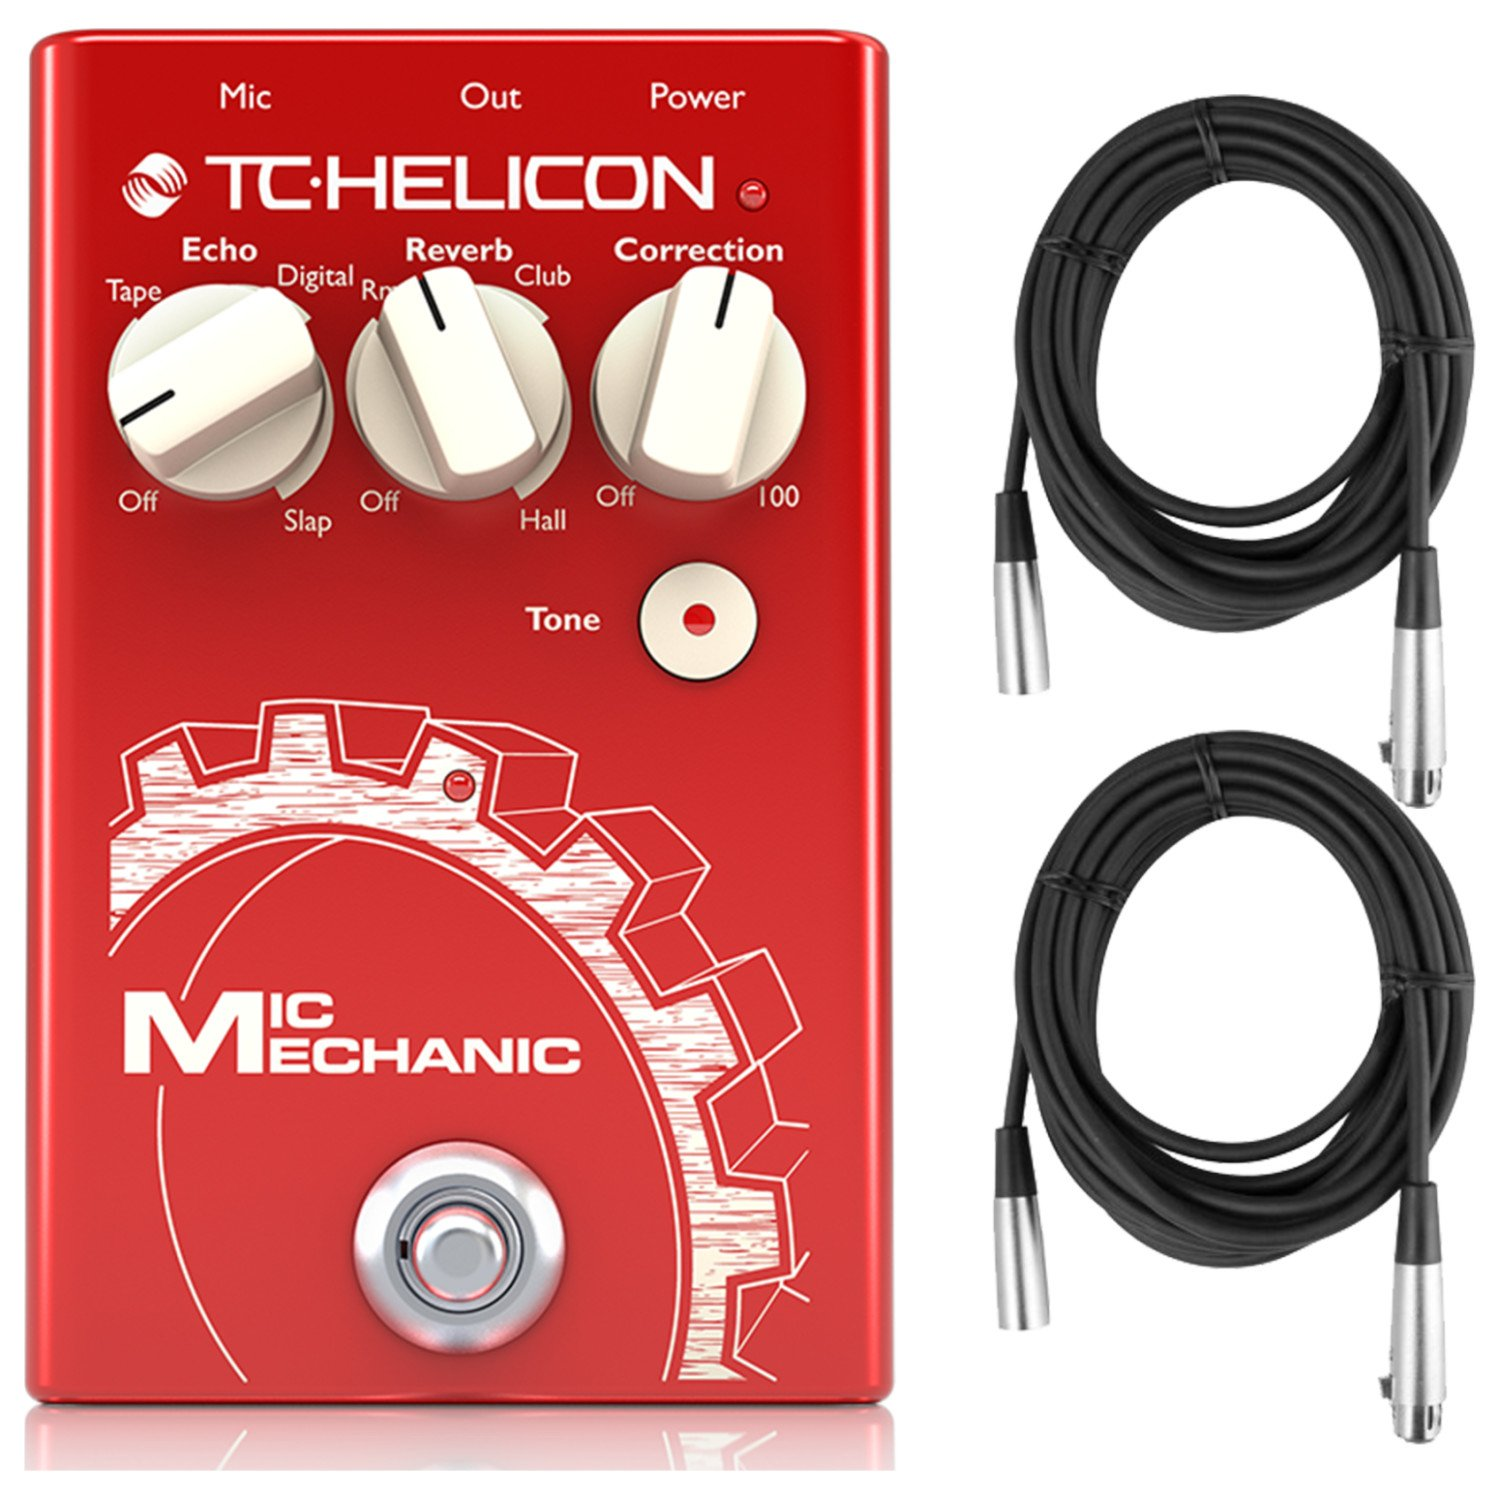 TC Helicon 996014001 Mic Mechanic 2 Vocal Effects Stomp Box w/ 2 Cables